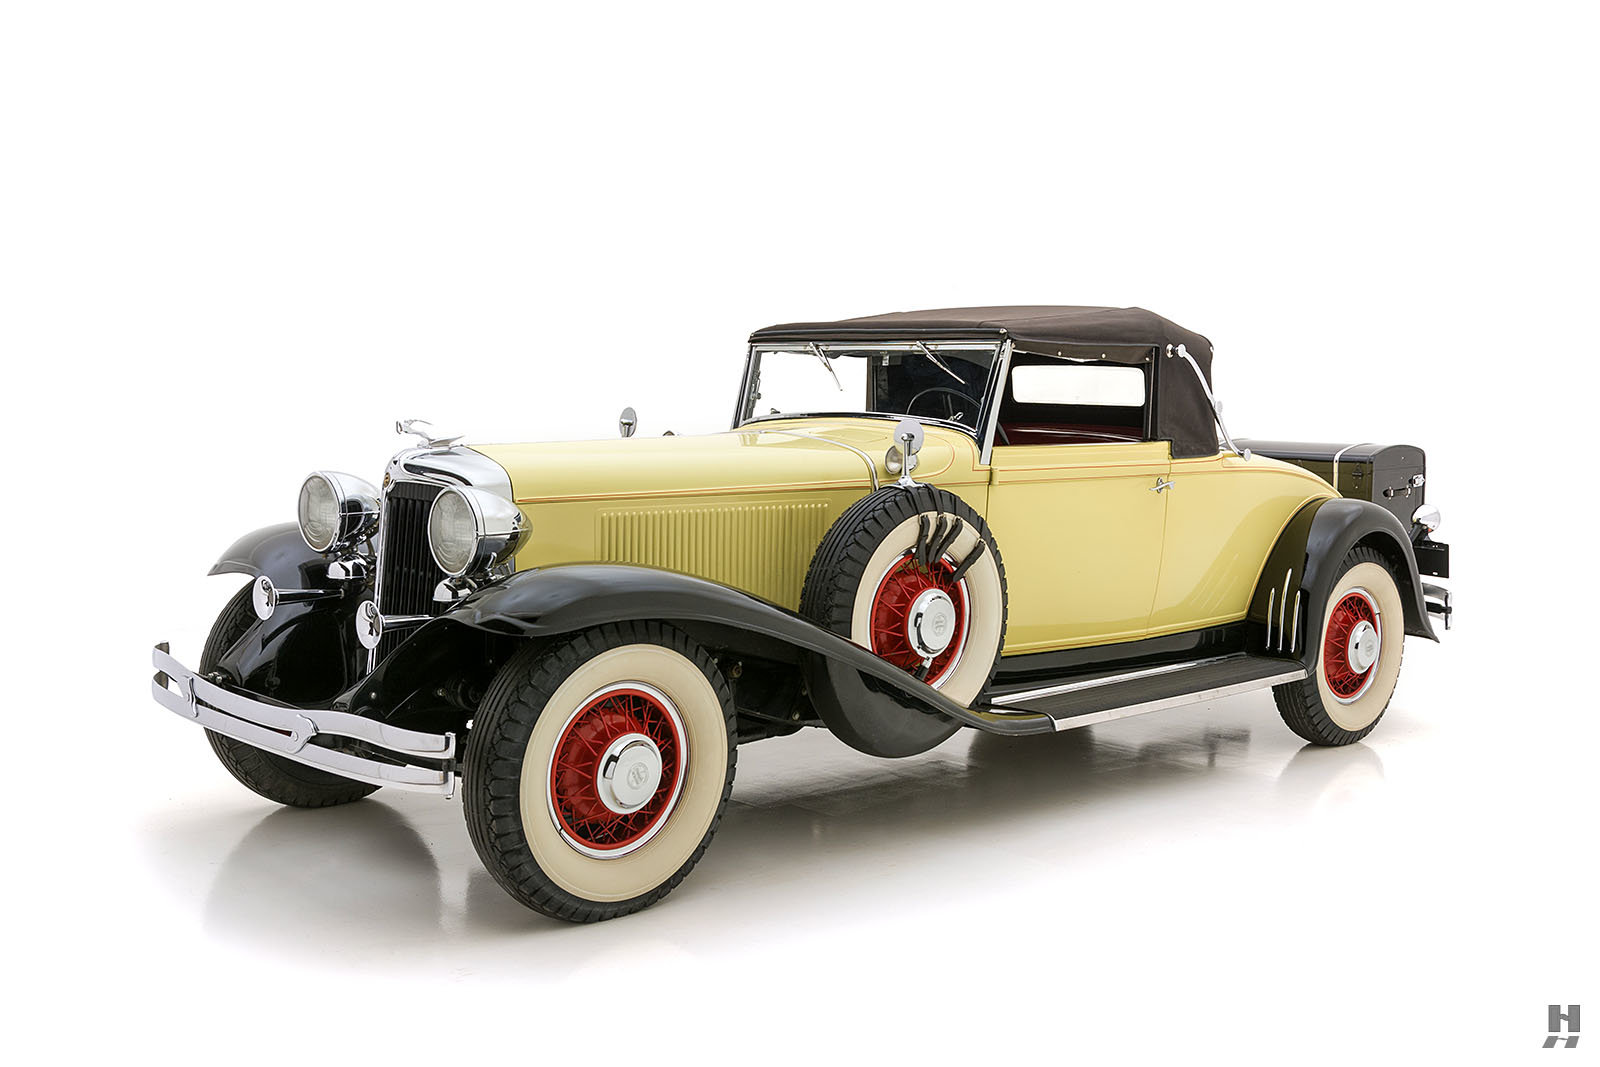 1931 Chrysler CG Imperial Convertible Coupe For Sale (picture 1 of 6)